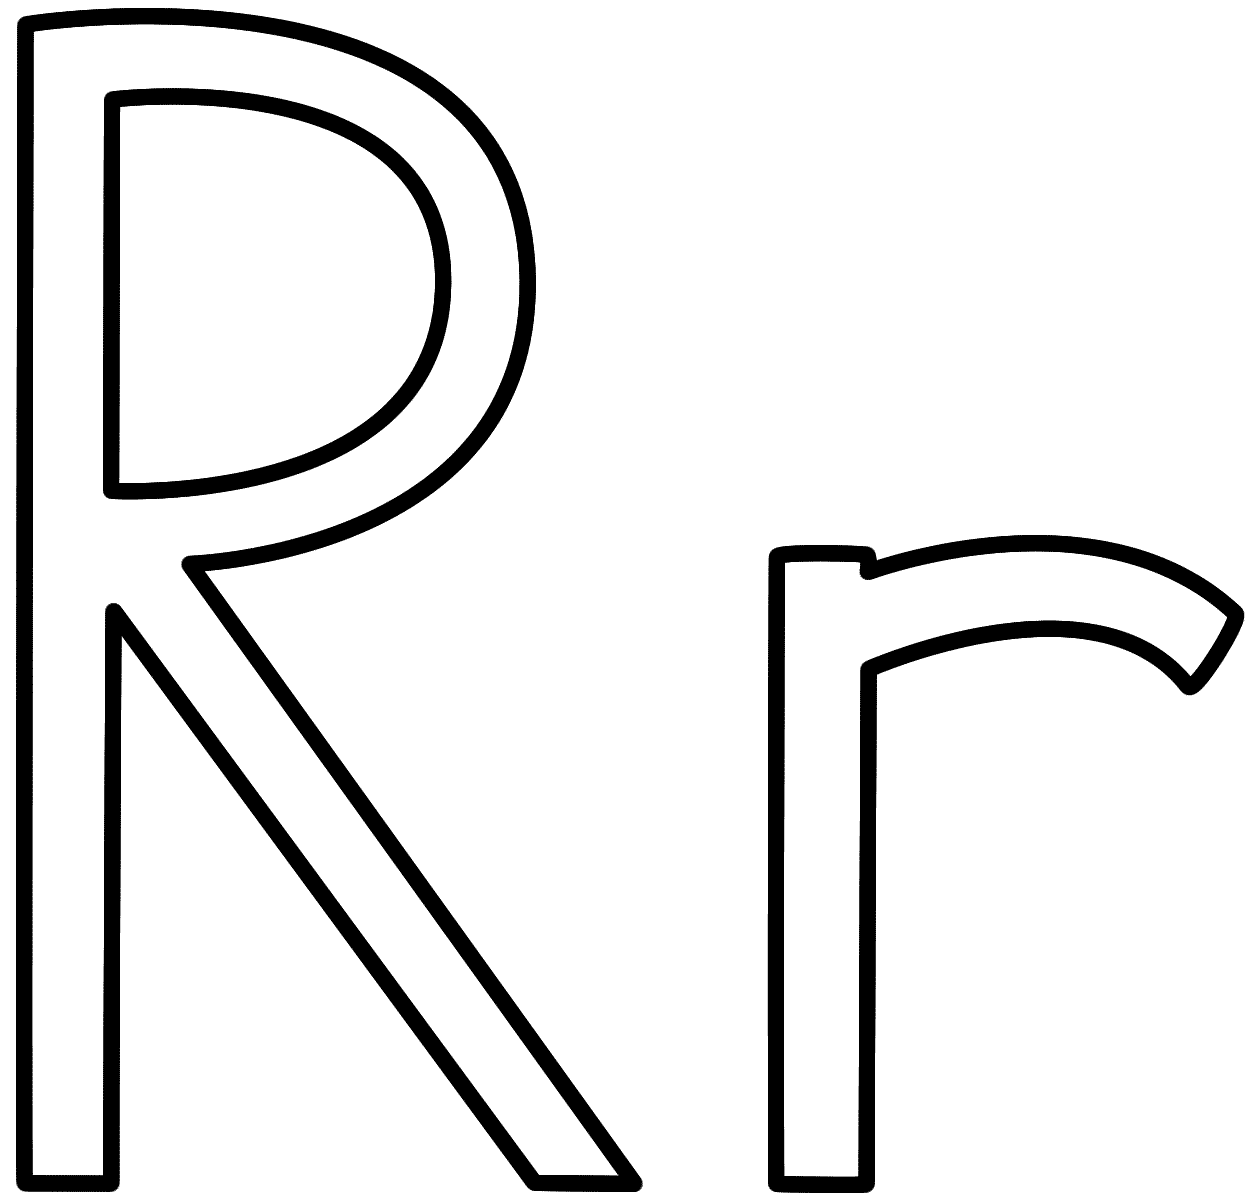 letter r coloring sheet throw up graffiti coloring pages free alphabet sheet coloring letter r